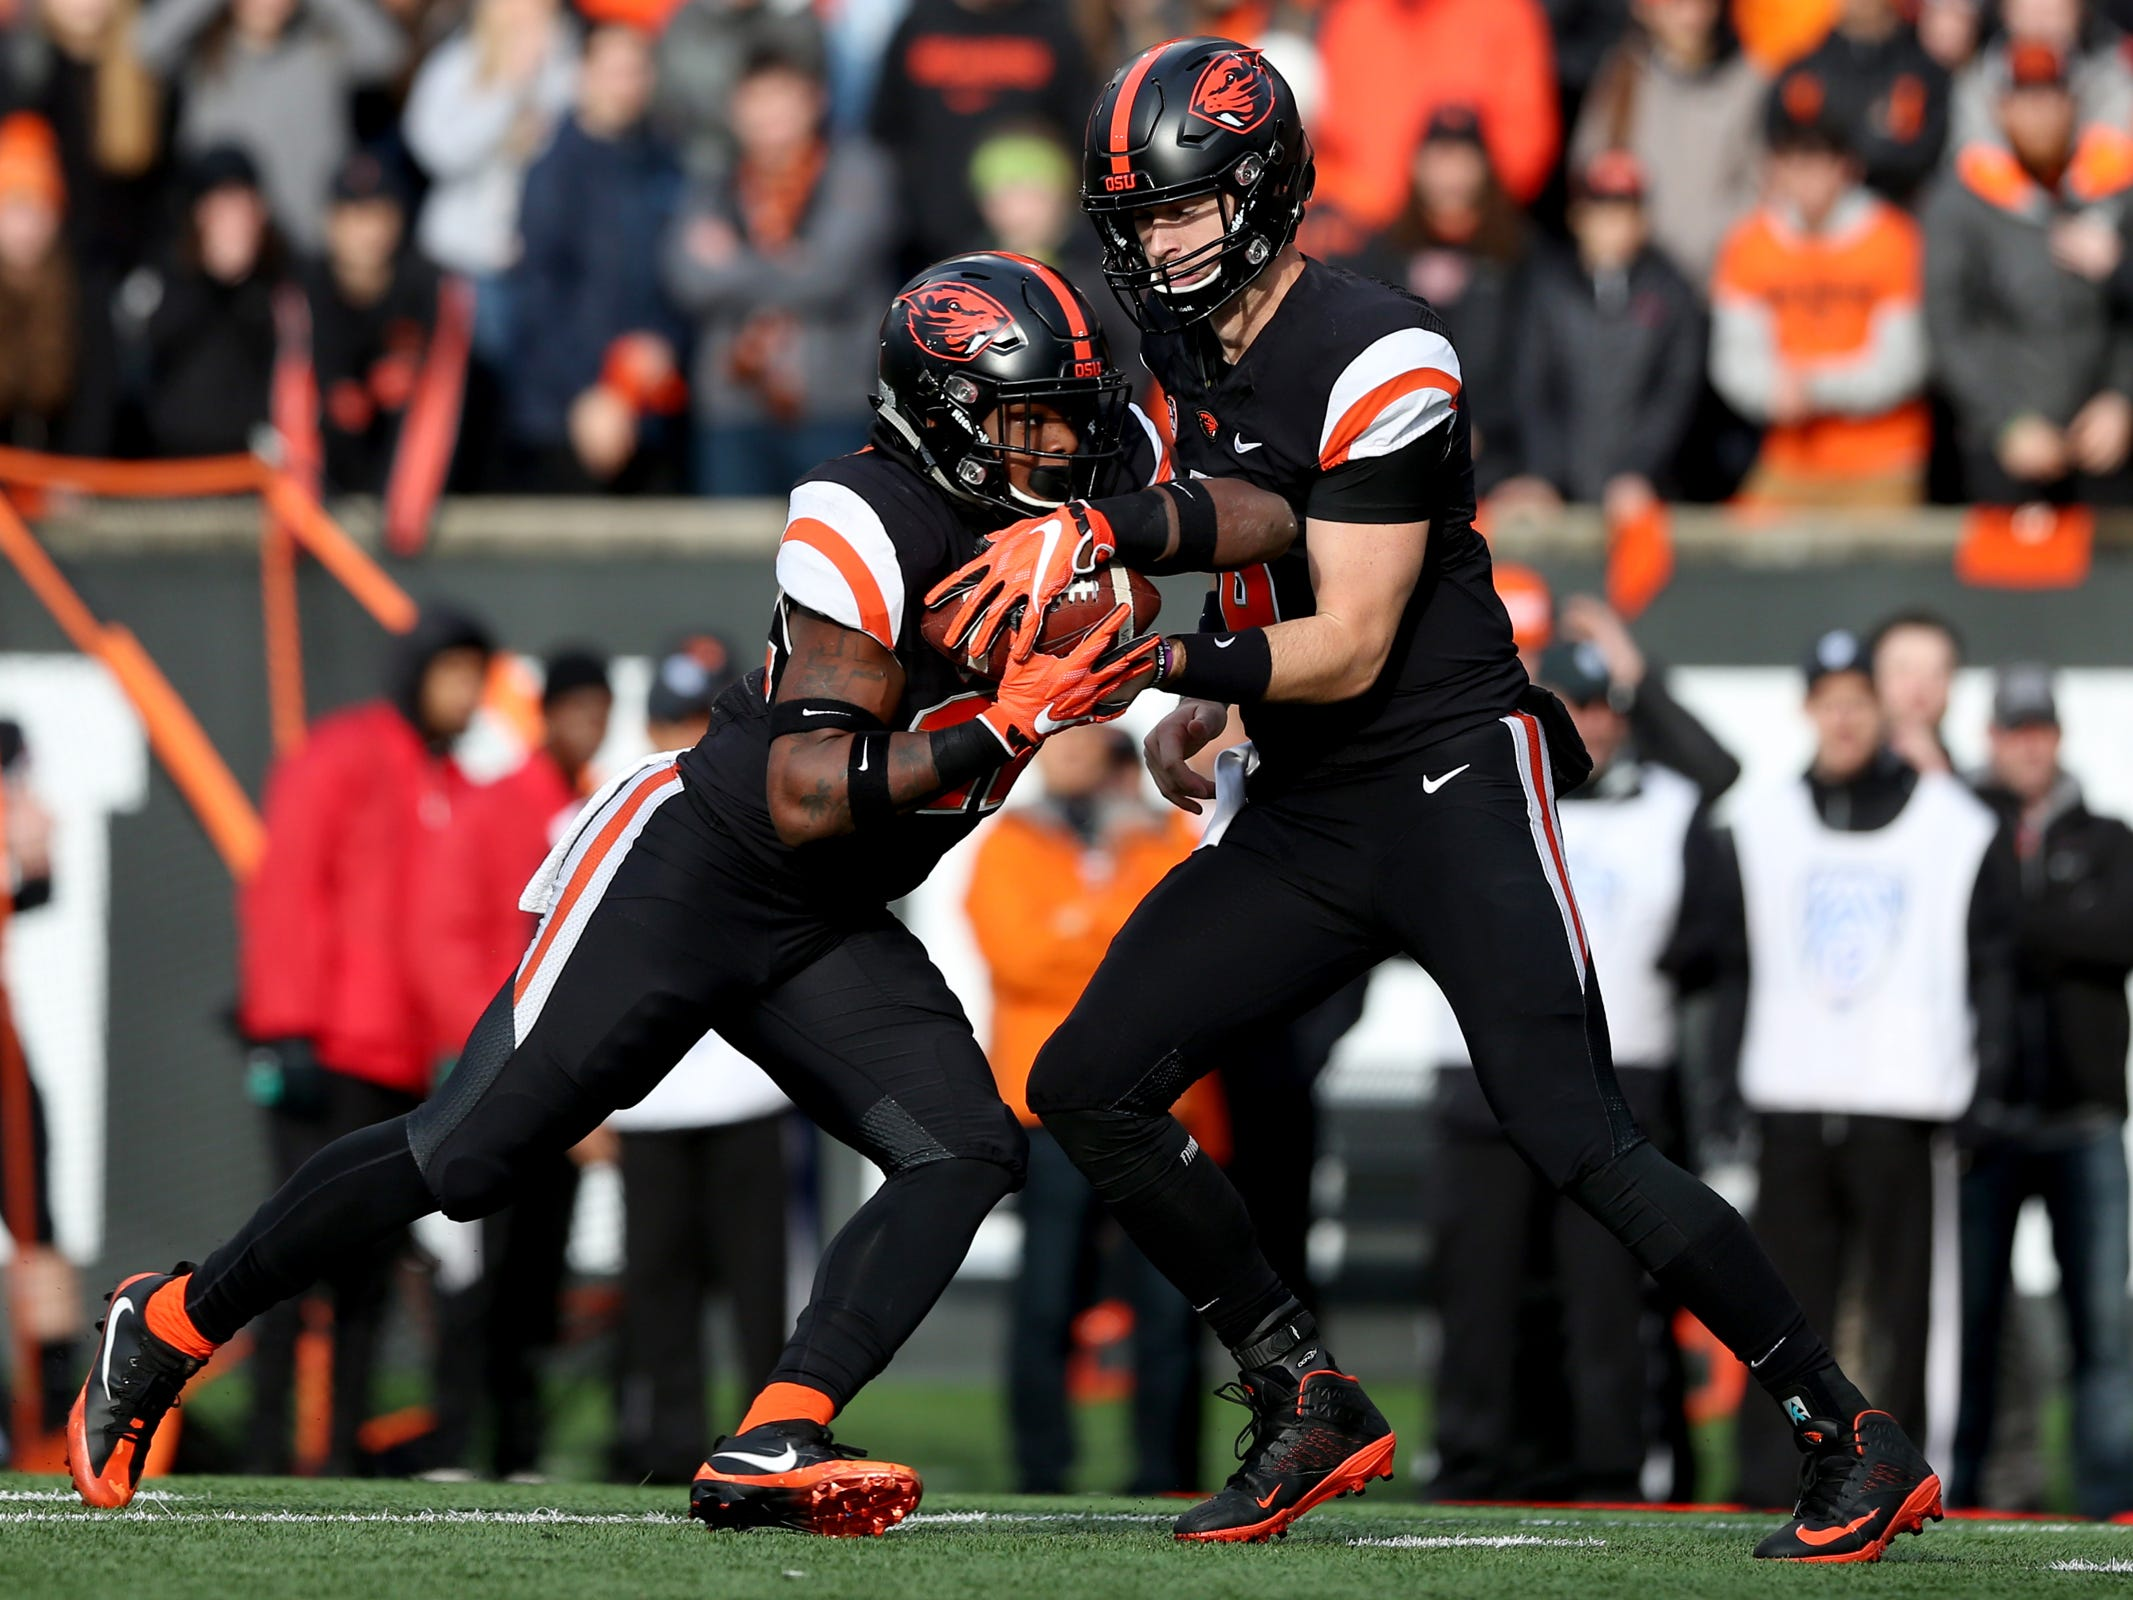 Oregon State's Jake Luton (6) hands the ball off to teammate Jermar Jefferson (22) in the Oregon vs. Oregon State Civil war football game at Oregon State University in Corvallis on Friday, Nov. 23, 2018.